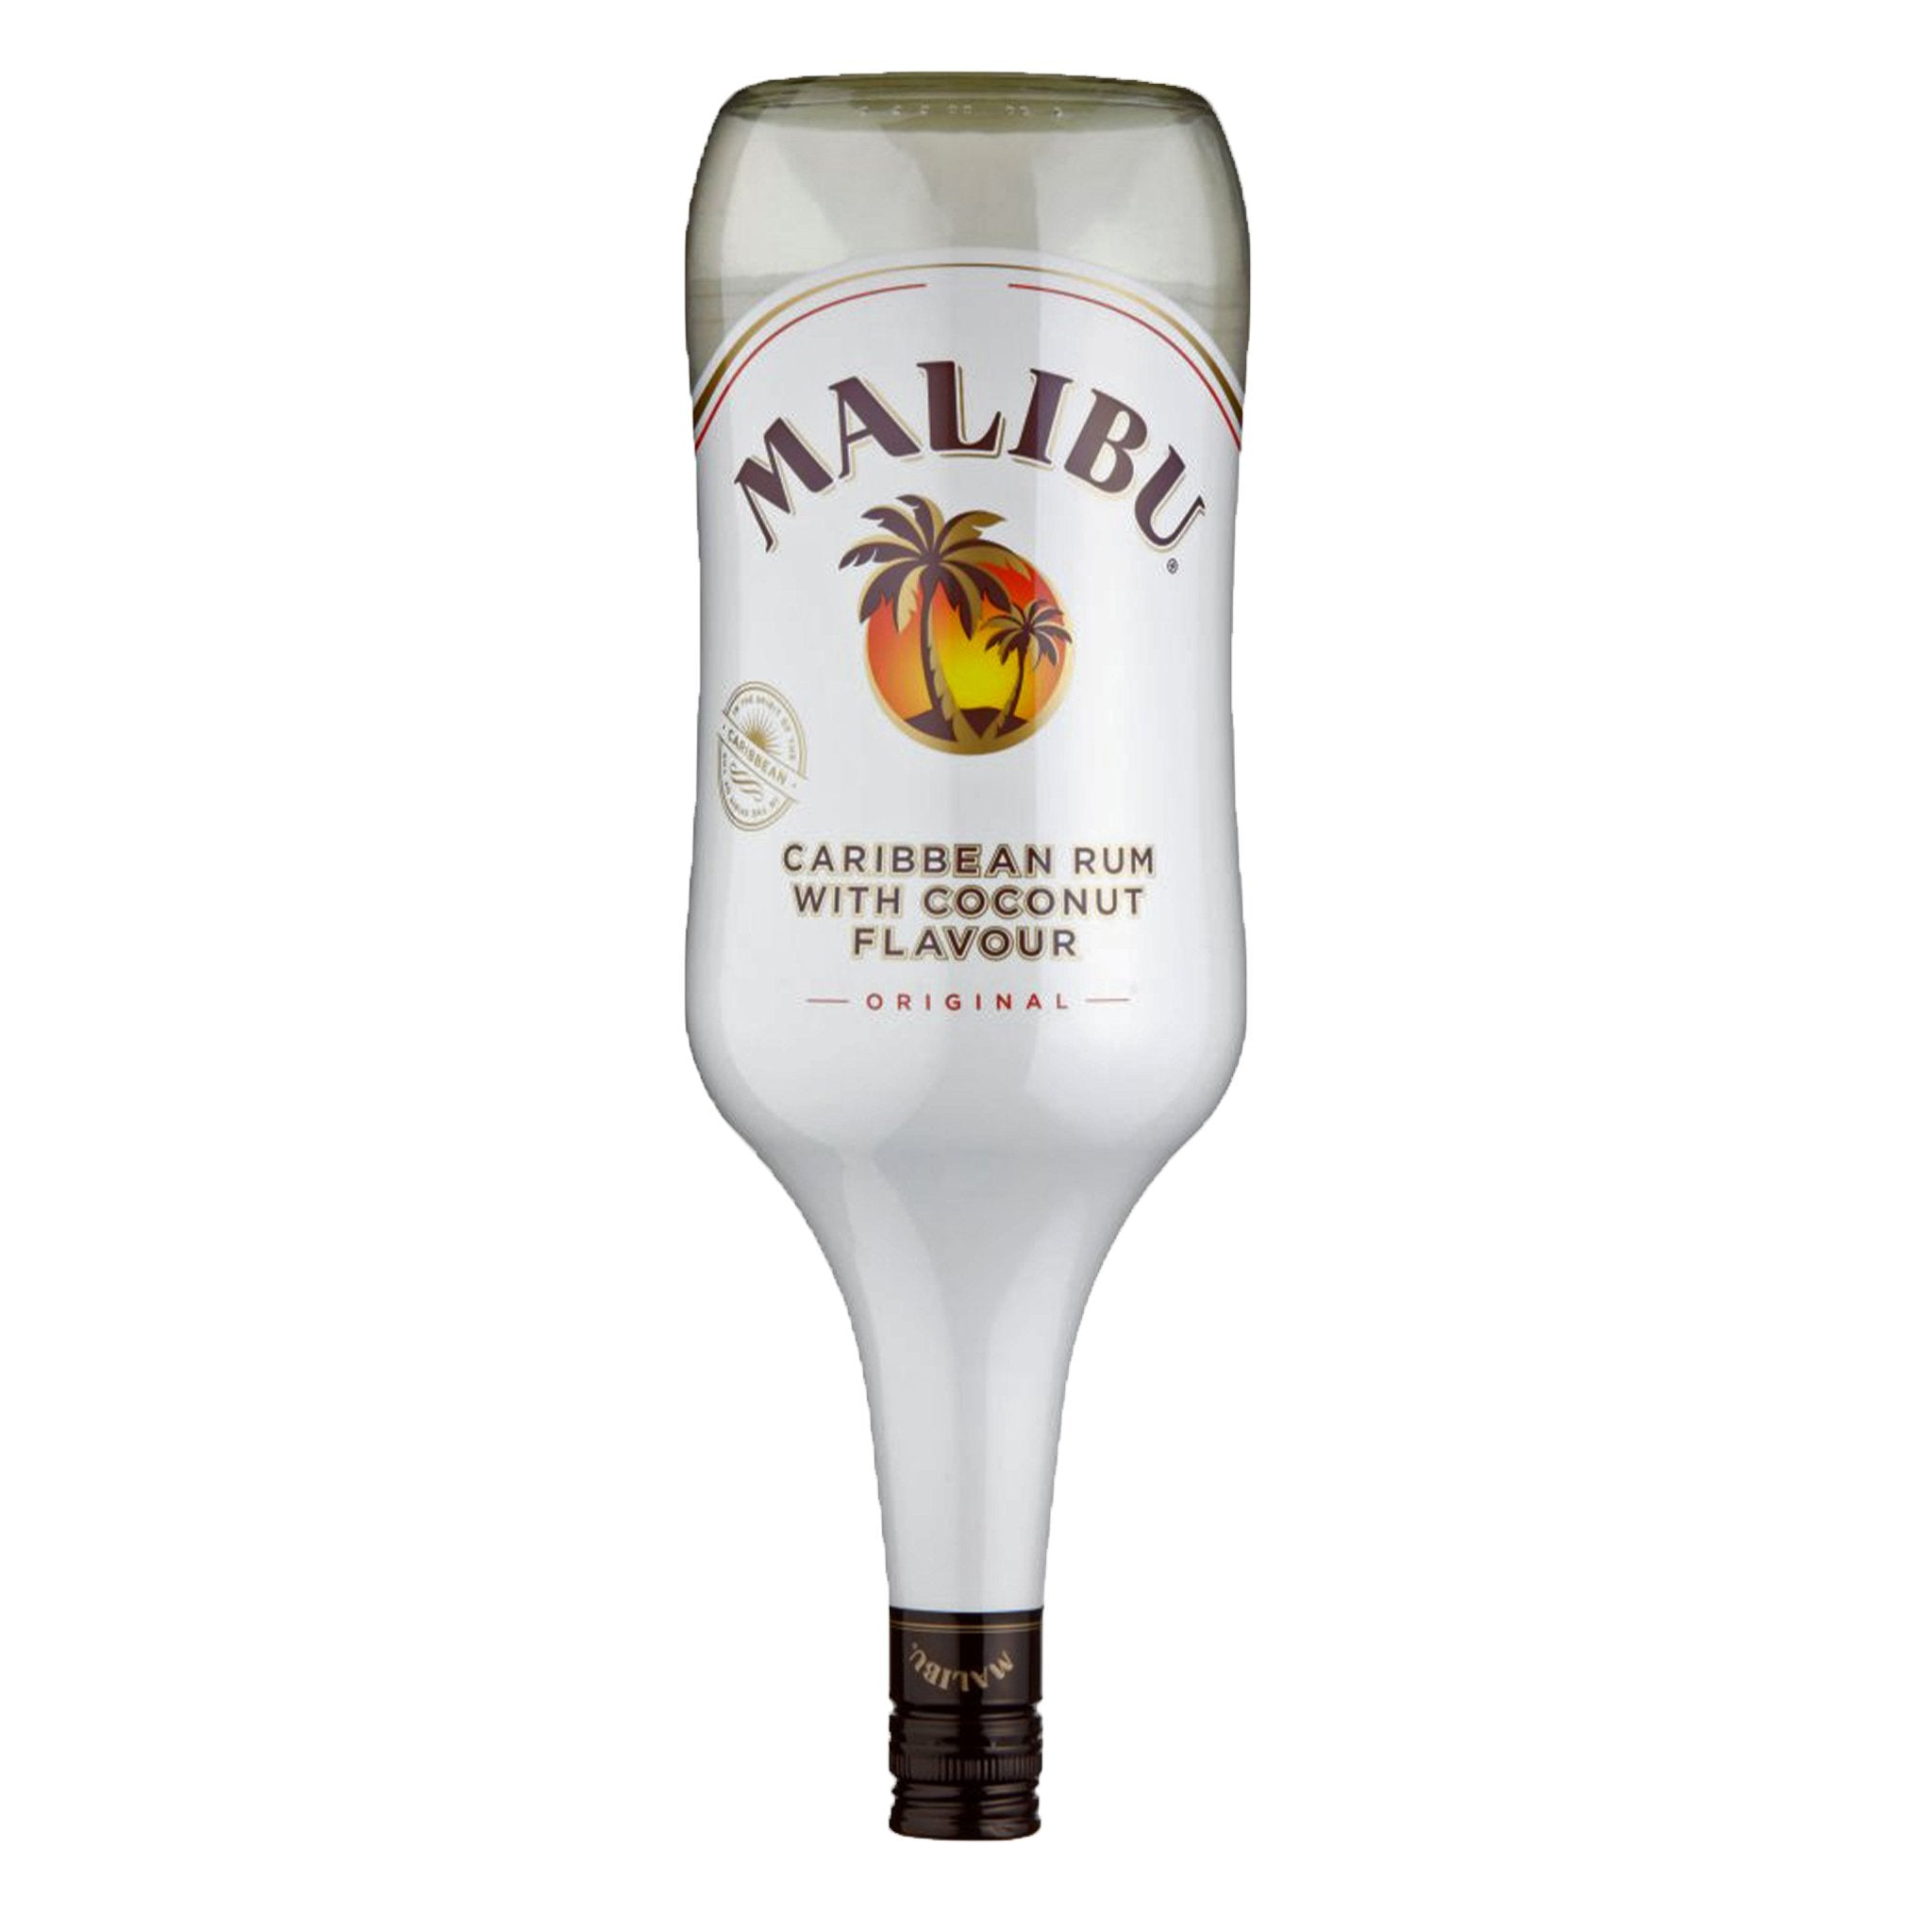 Malibu Original White Rum with Coconut Flavour 1.5L, Beverages by Drinks Shop